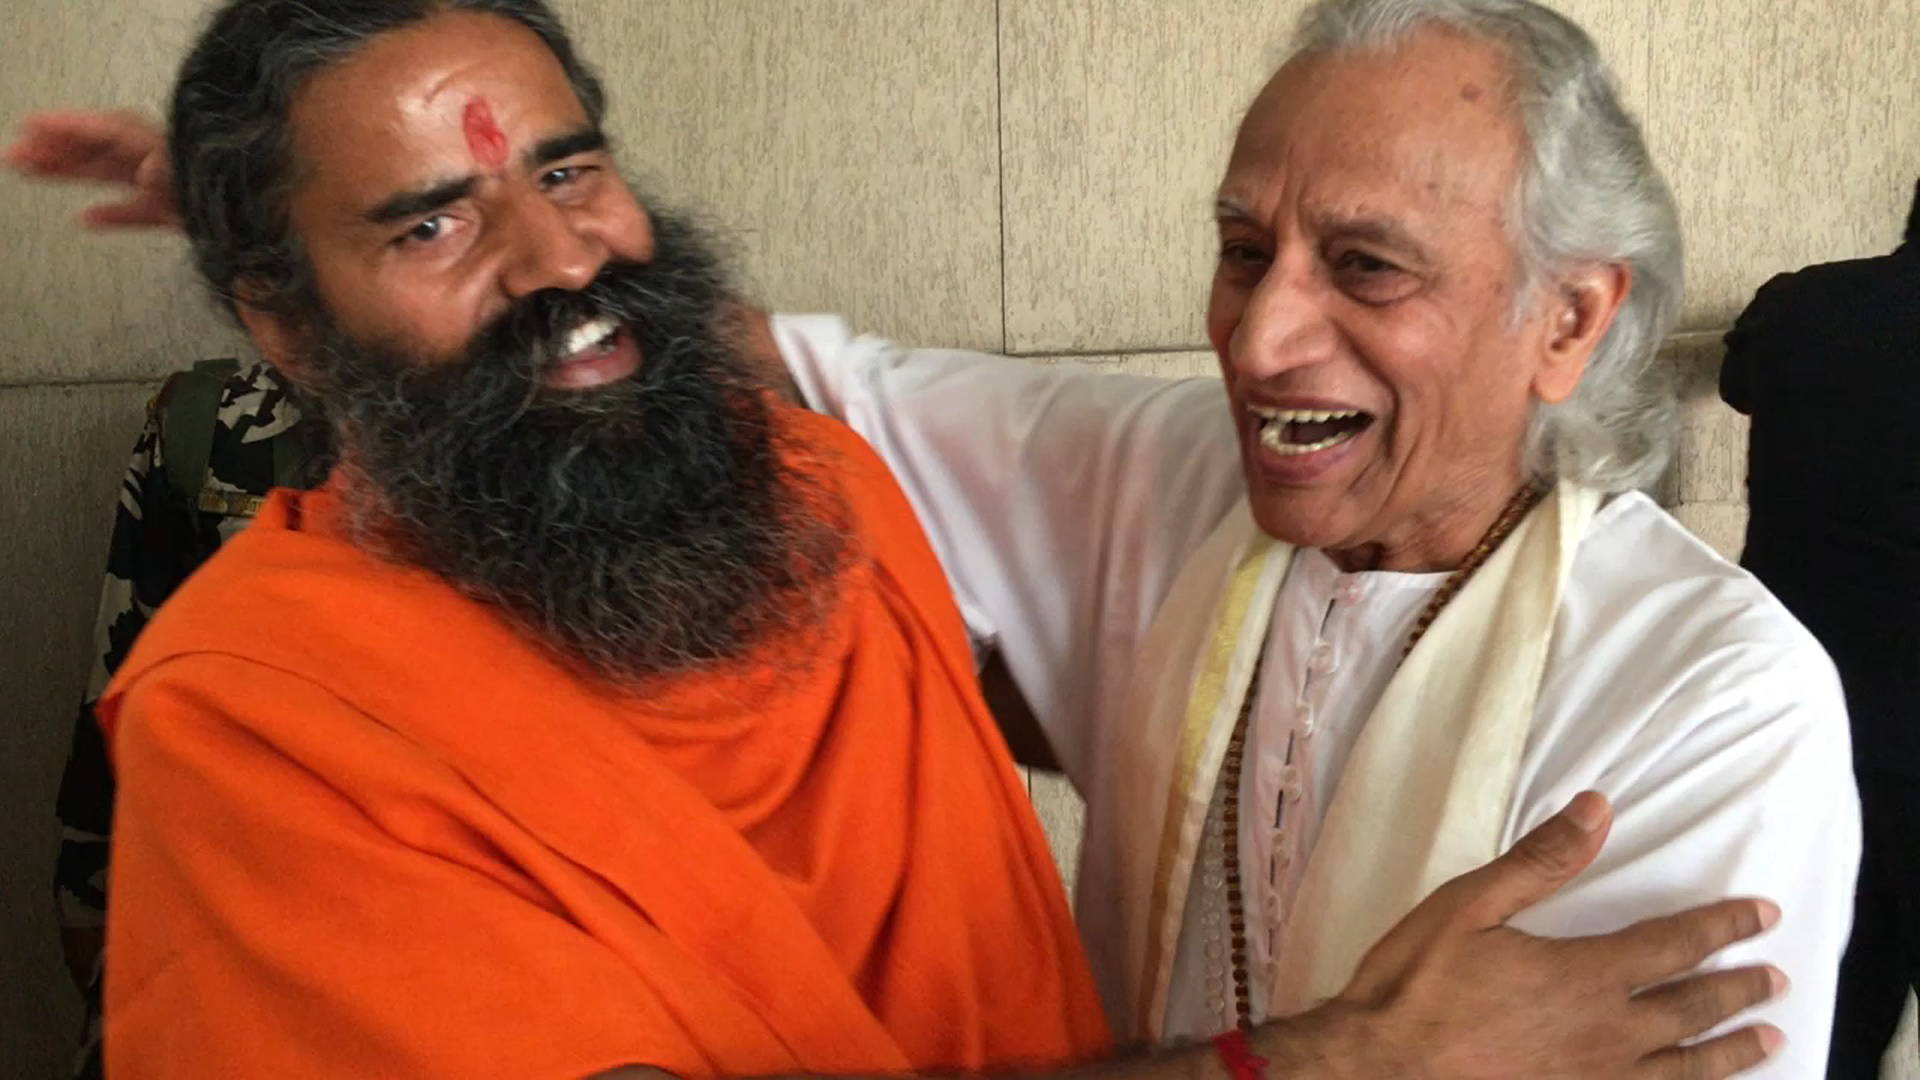 Gurudev and Baba Ramdev hugging